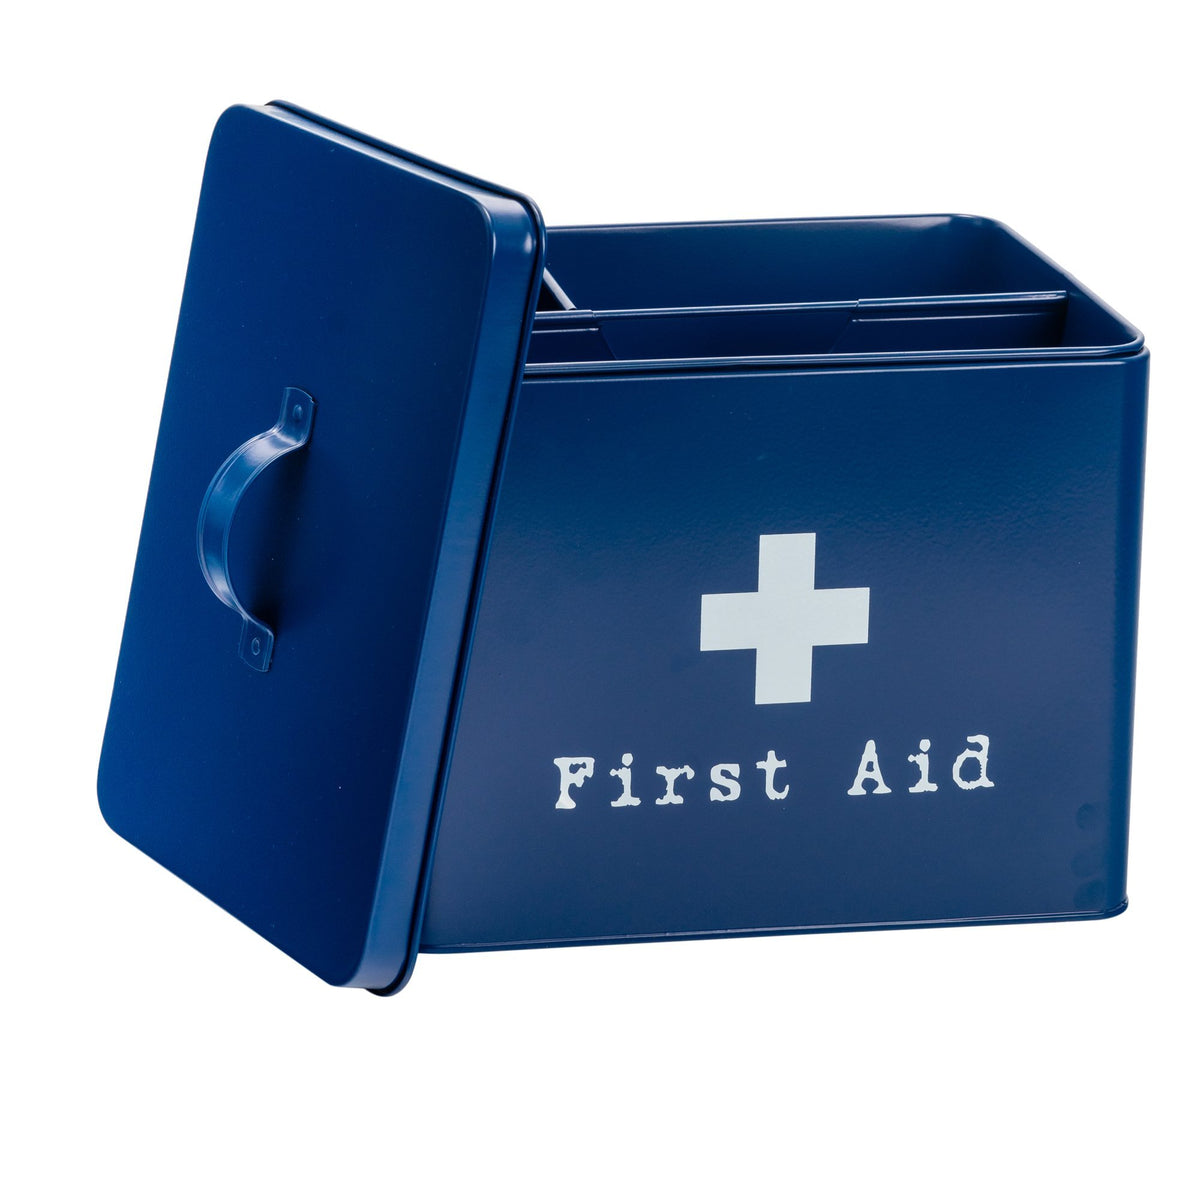 Harbour Housewares Vintage Metal First Aid Medicine Storage Box with Lid